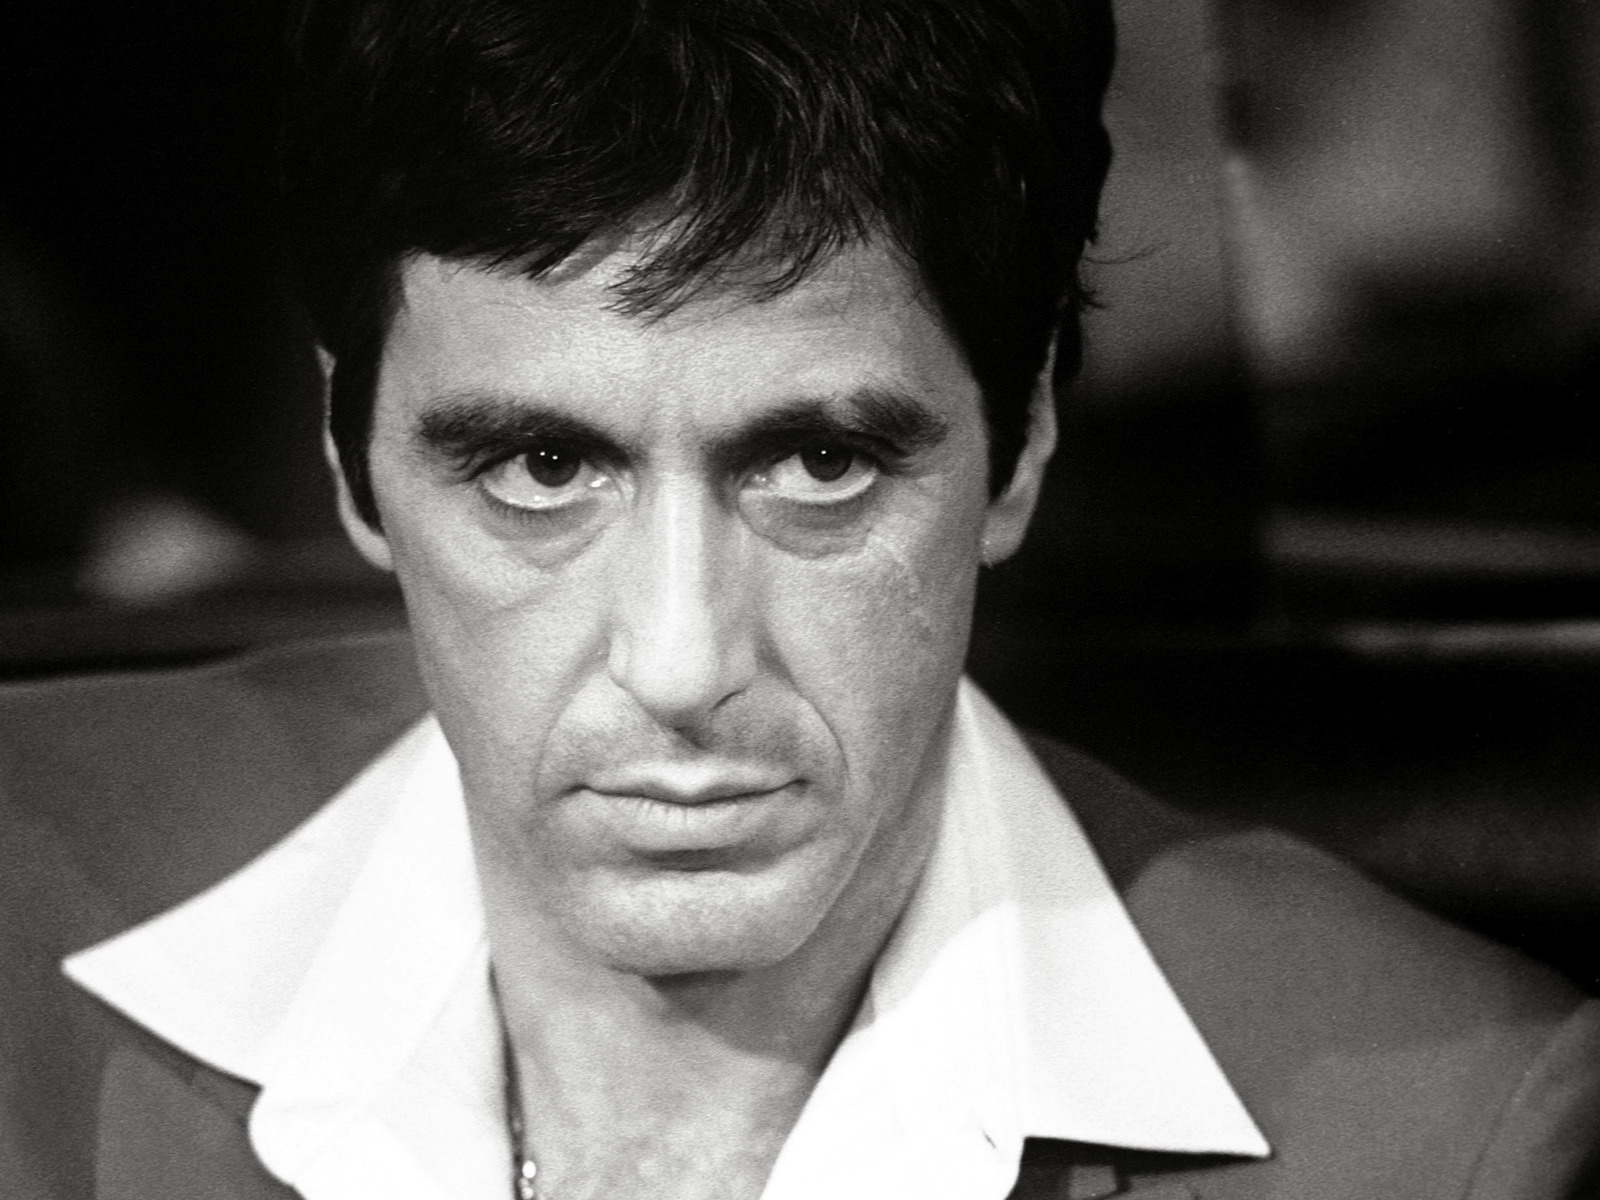 Scarface Wallpaper Home Psp Download 1600x1200